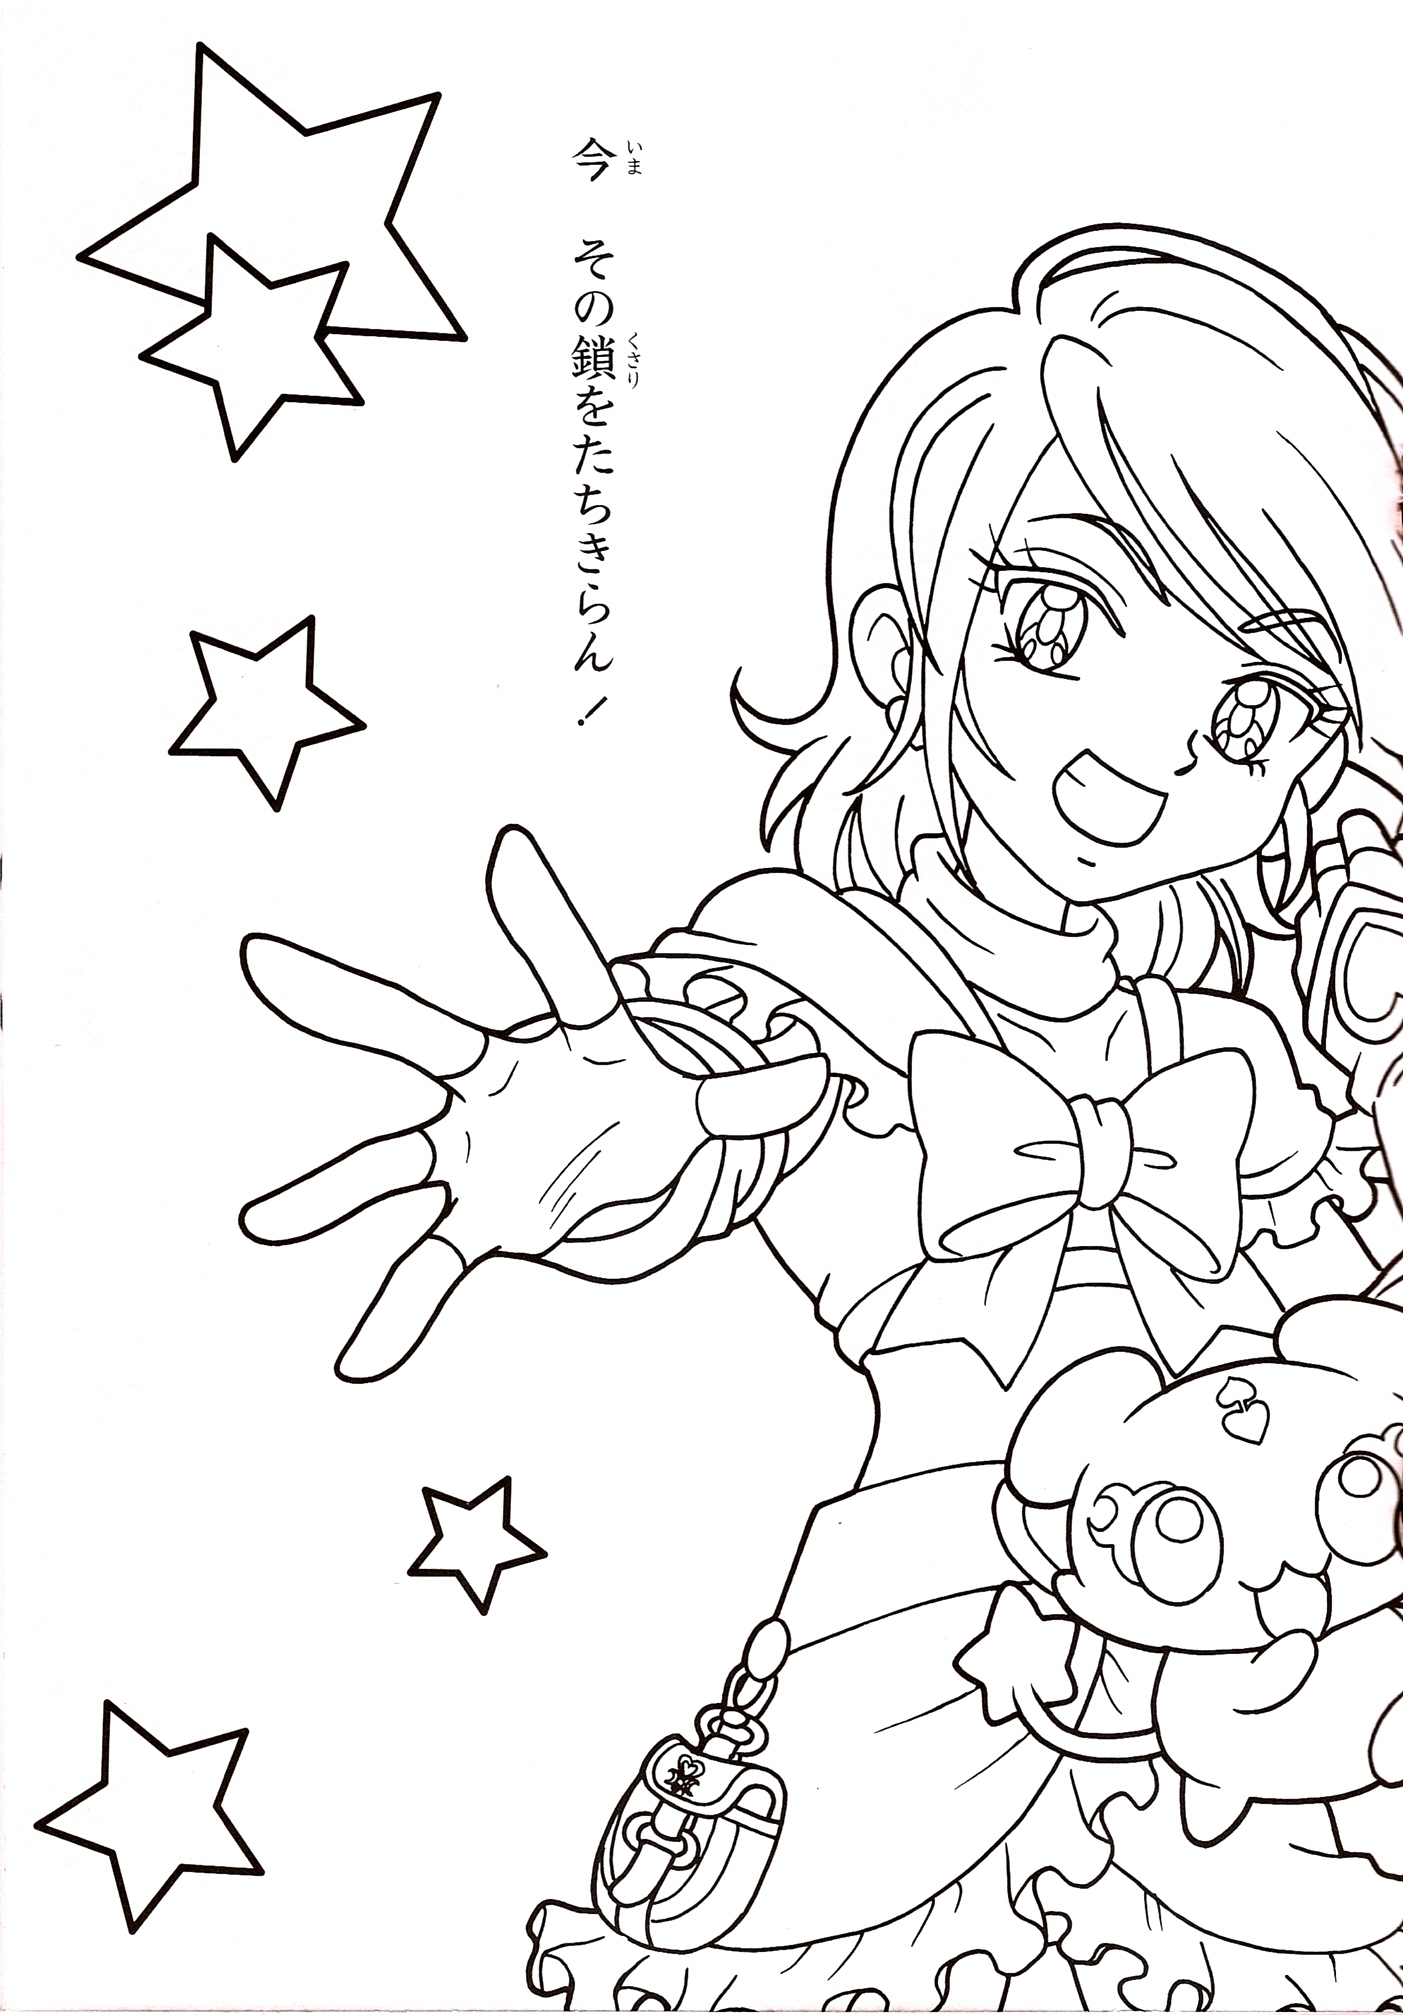 oasidelleanime precure coloring pages - photo #20